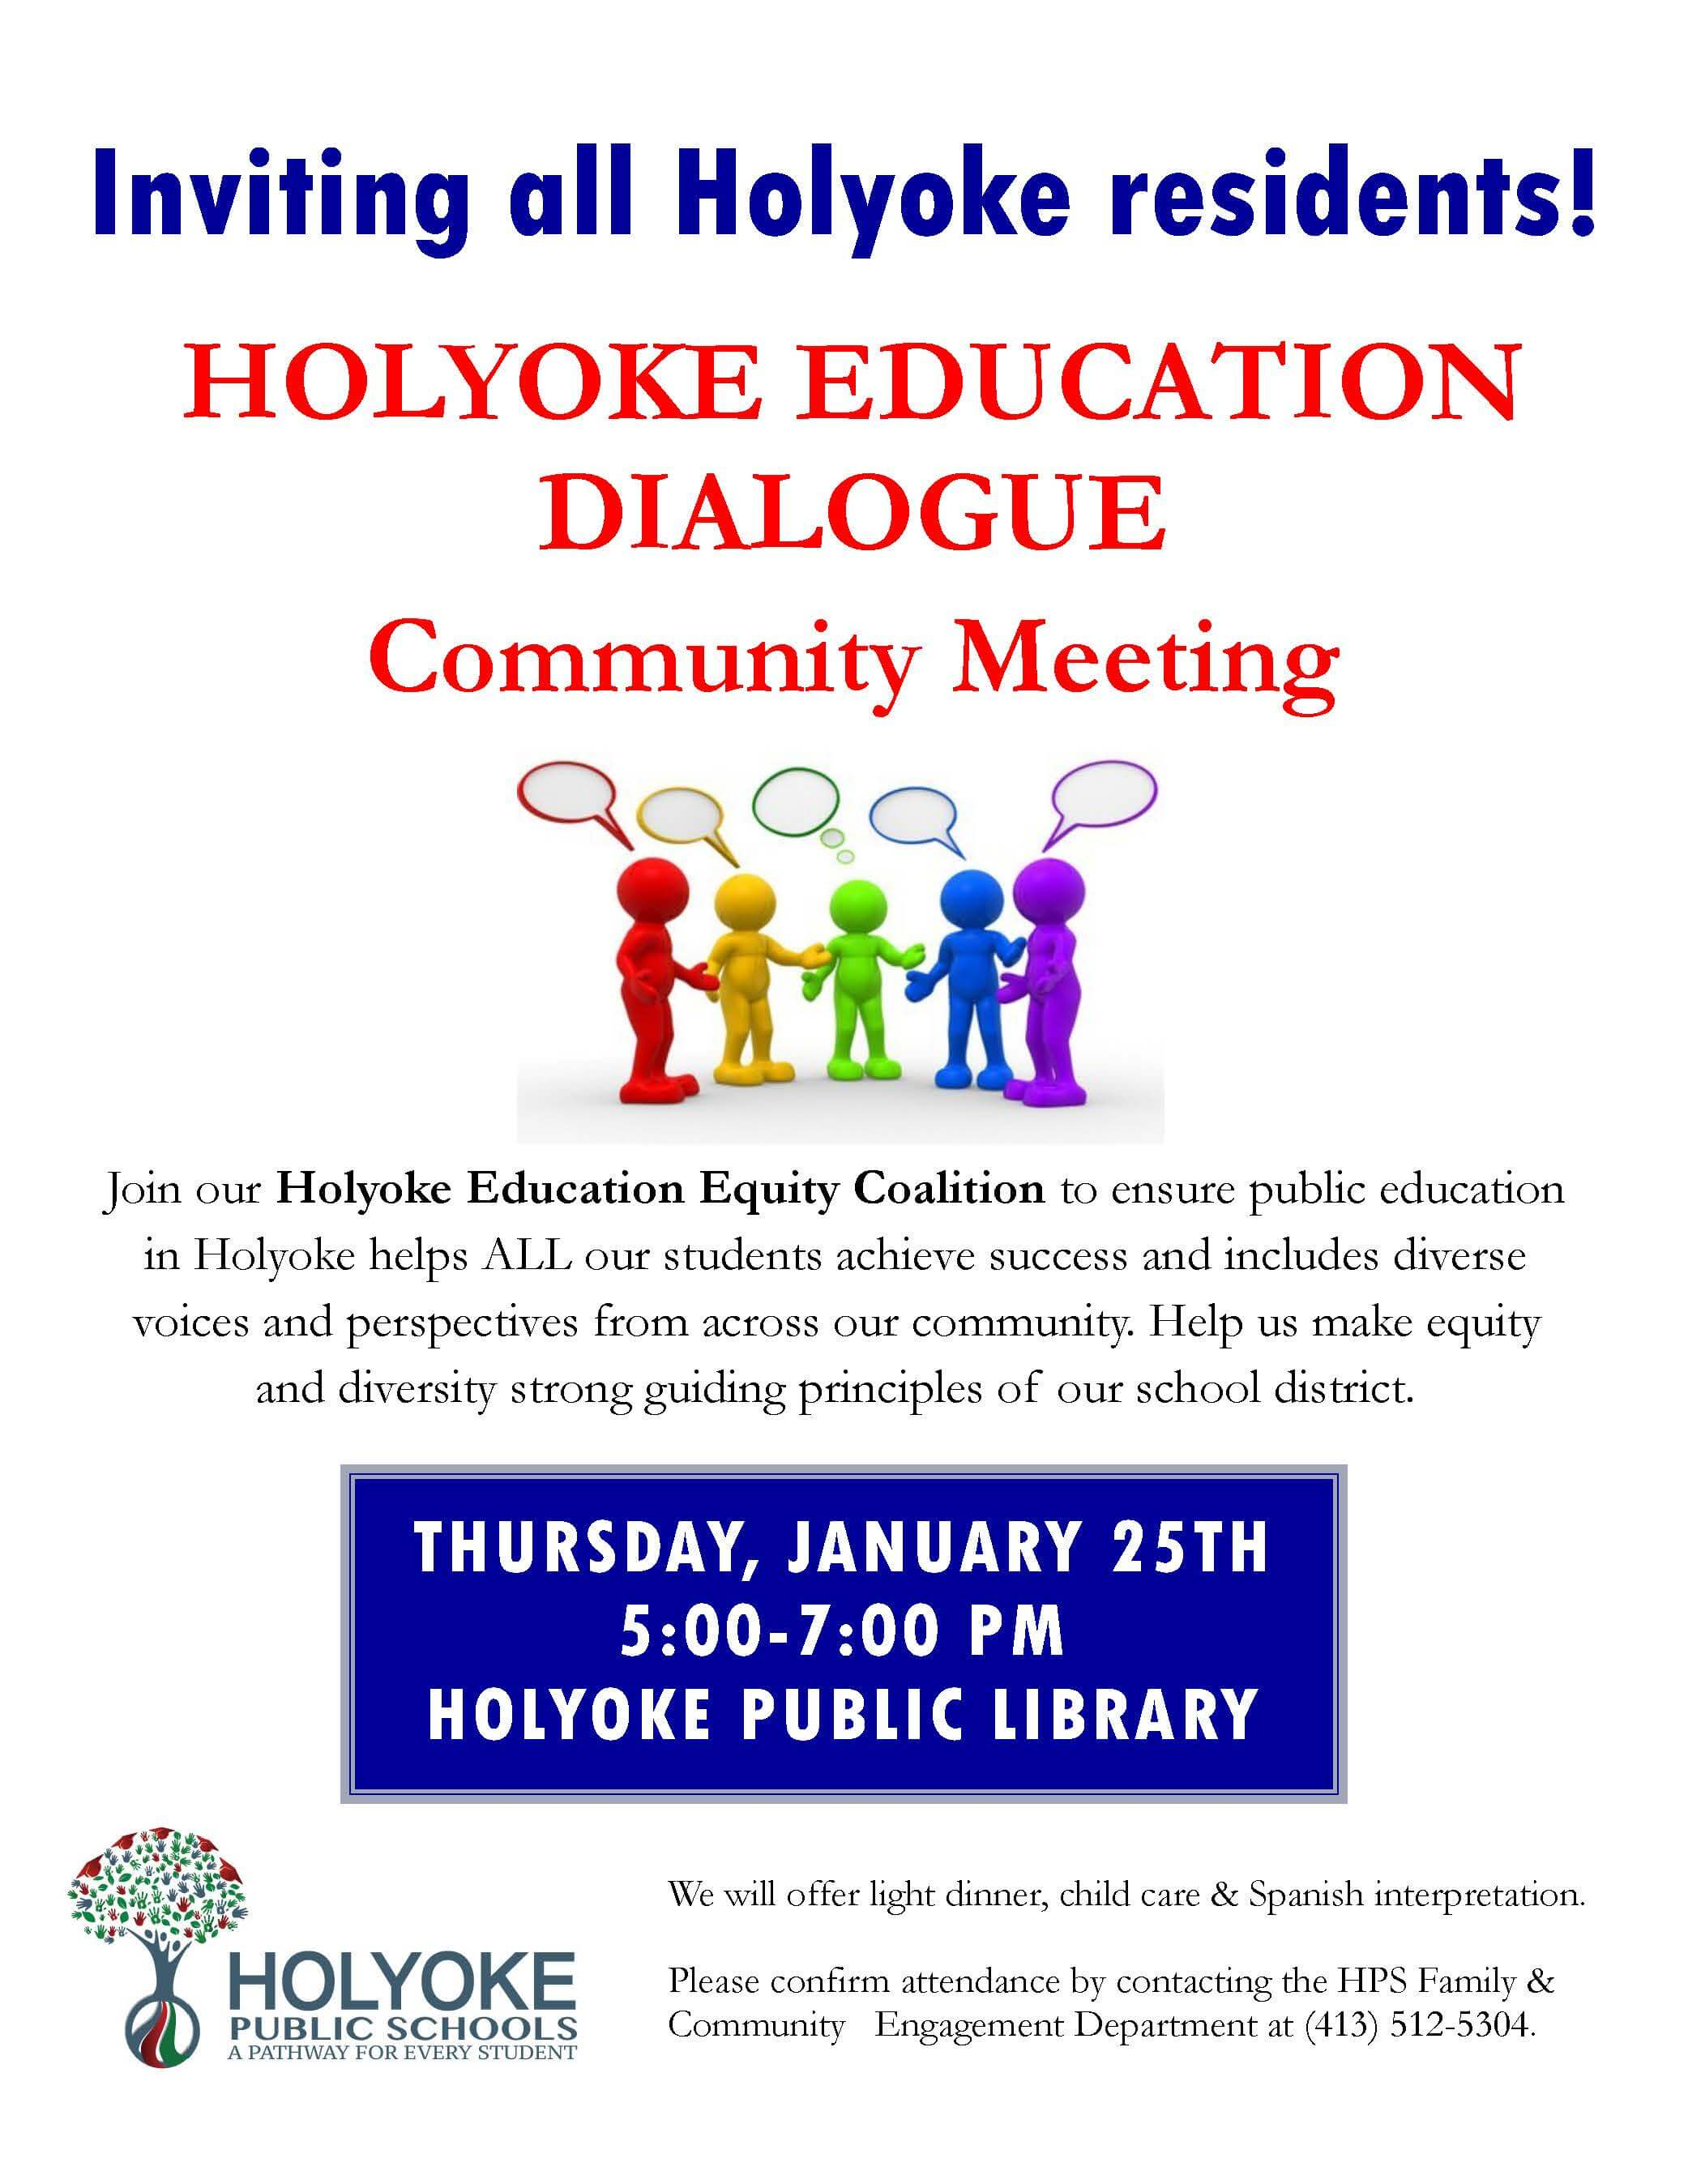 Inviting all Holyoke residents! Holyoke Education Dialogue Community Meeting